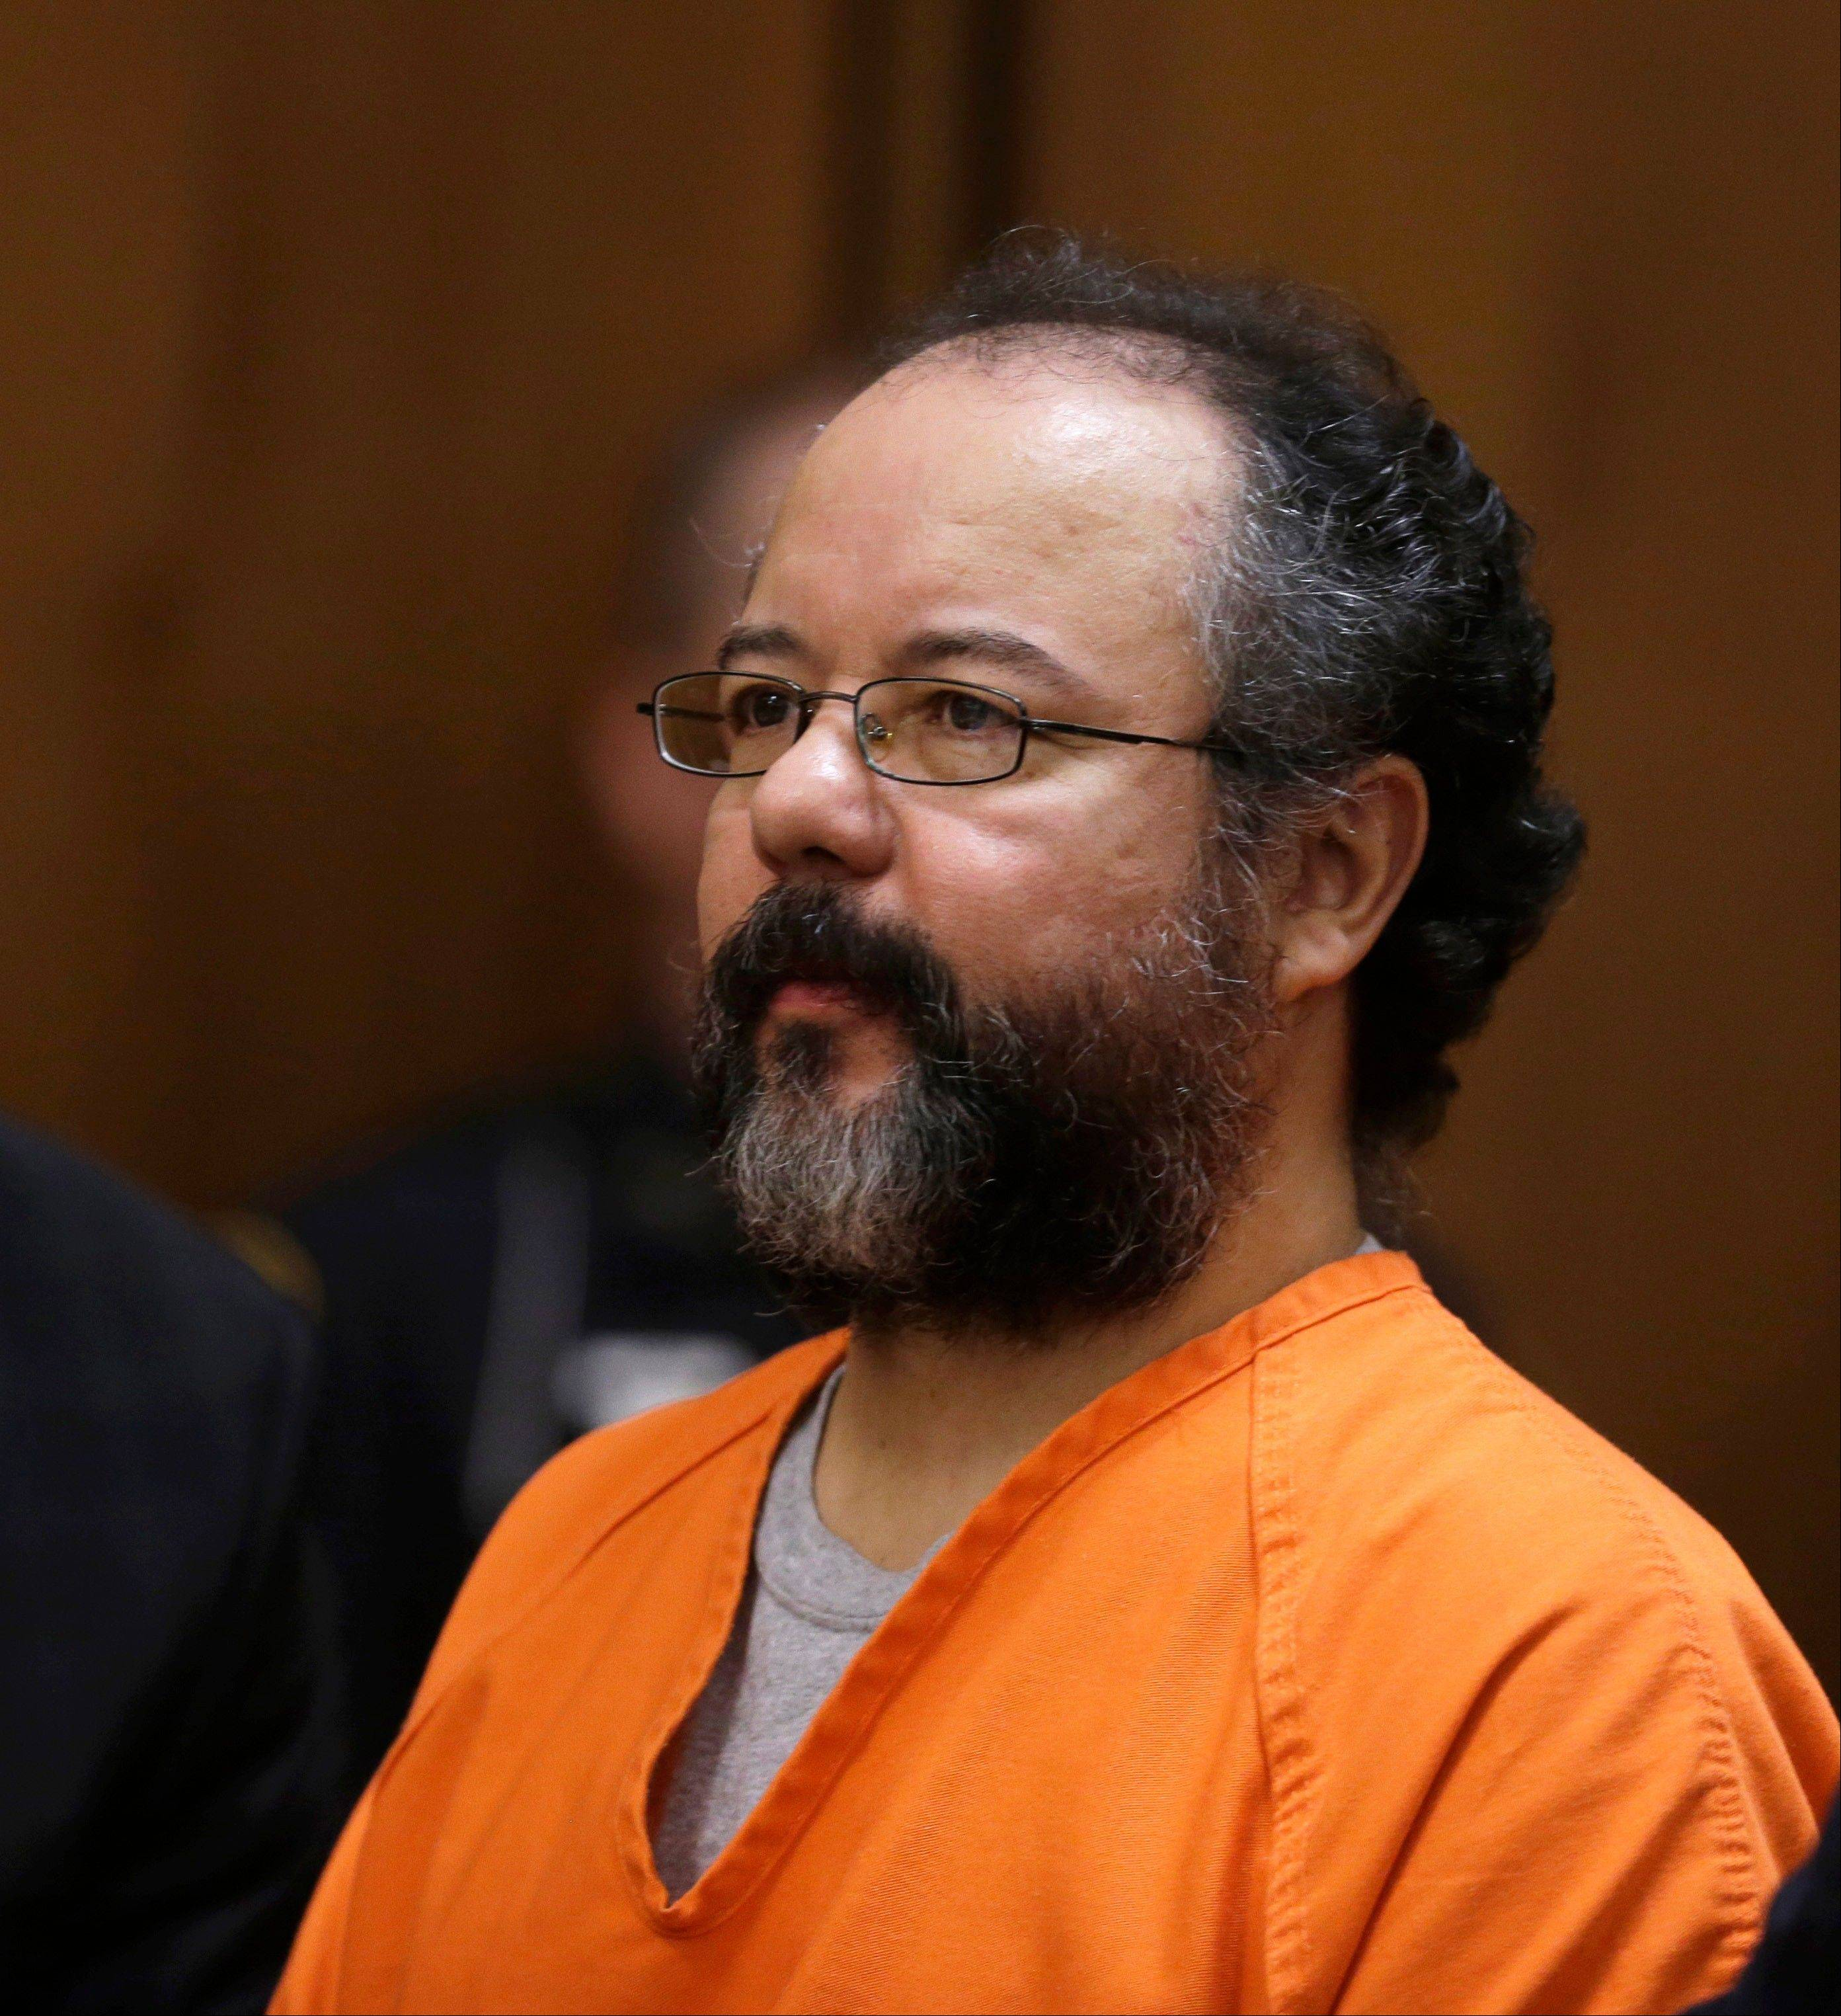 Ariel Castro sits in the courtroom during the sentencing phase Thursday, Aug. 1, 2013, in Cleveland. Three months after an Ohio woman kicked out part of a door to end nearly a decade of captivity, Castro got the life term for the most serious count and was getting additional time for the hundreds of other counts.